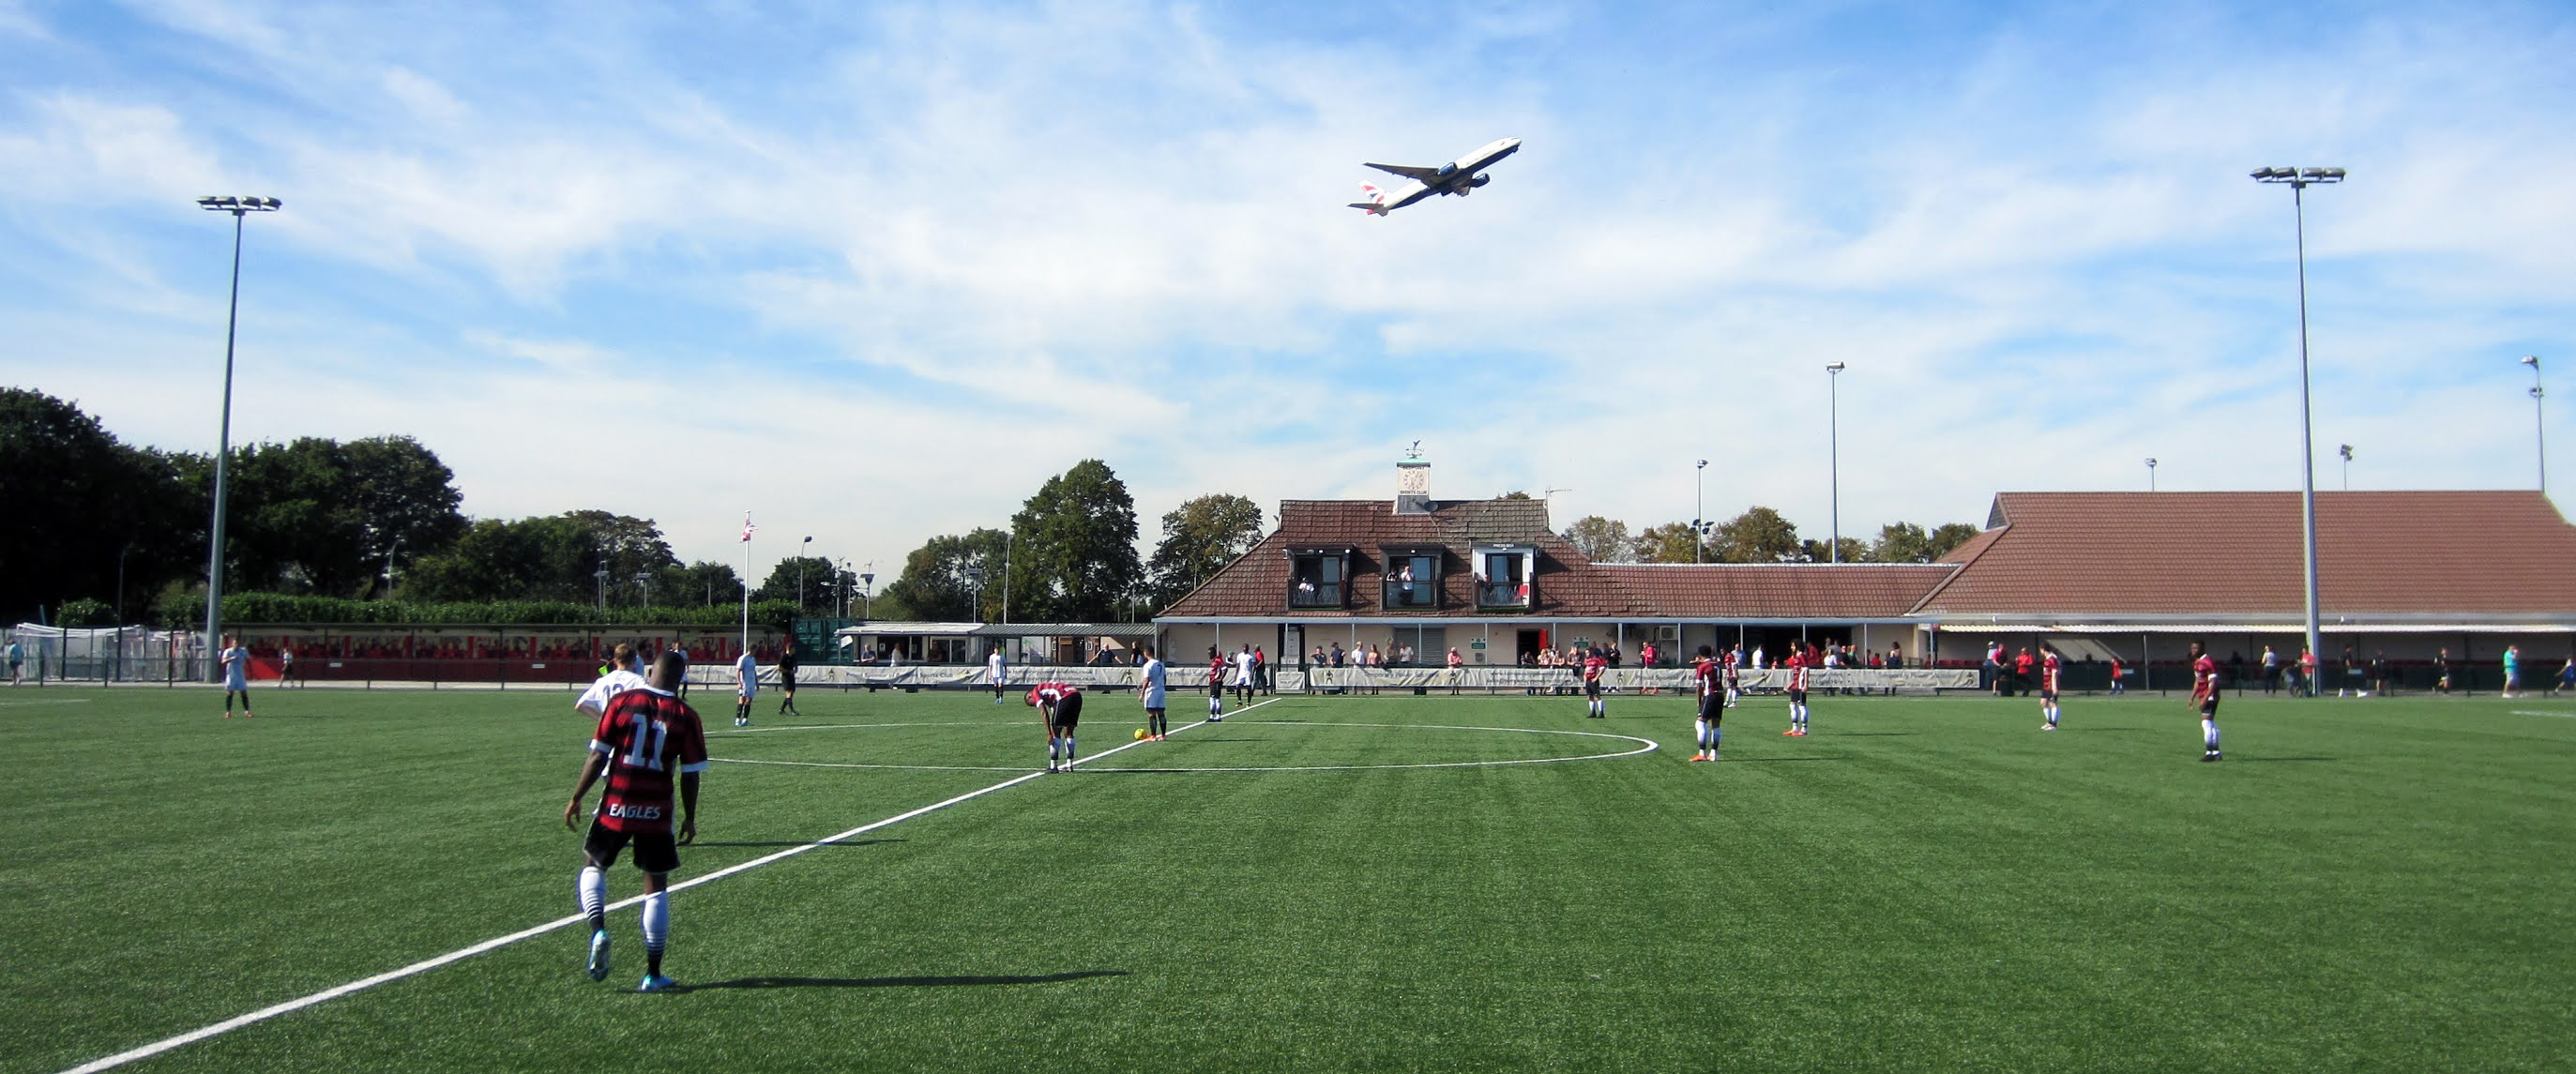 A plane takes off above Bedfont Sports Recreation Ground